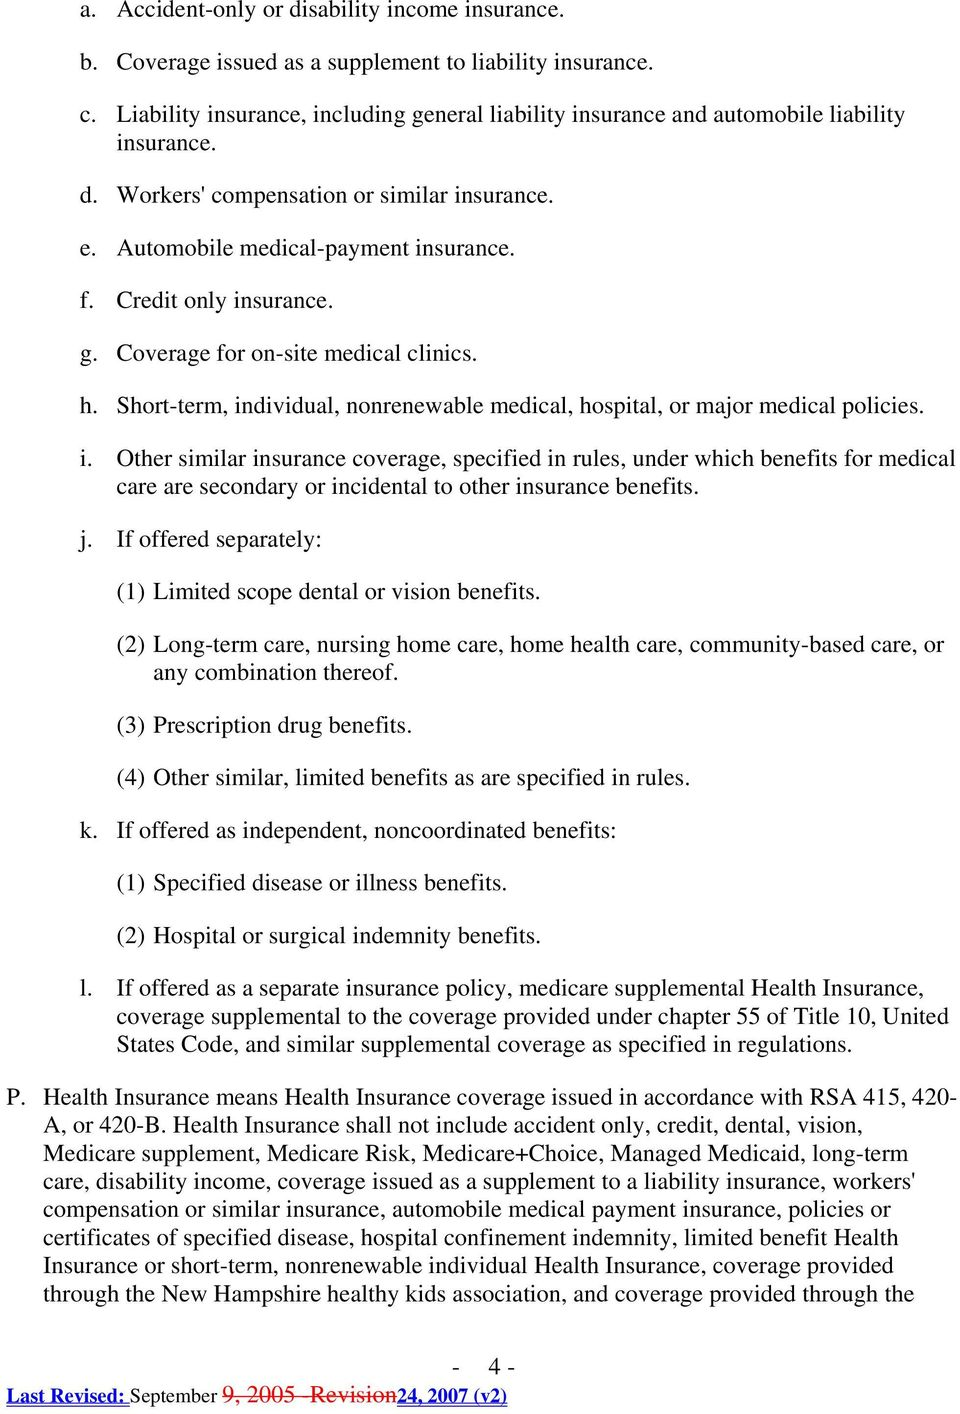 Credit only insurance. g. Coverage for on-site medical clinics. h. Short-term, individual, nonrenewable medical, hospital, or major medical policies. i. Other similar insurance coverage, specified in rules, under which benefits for medical care are secondary or incidental to other insurance benefits.